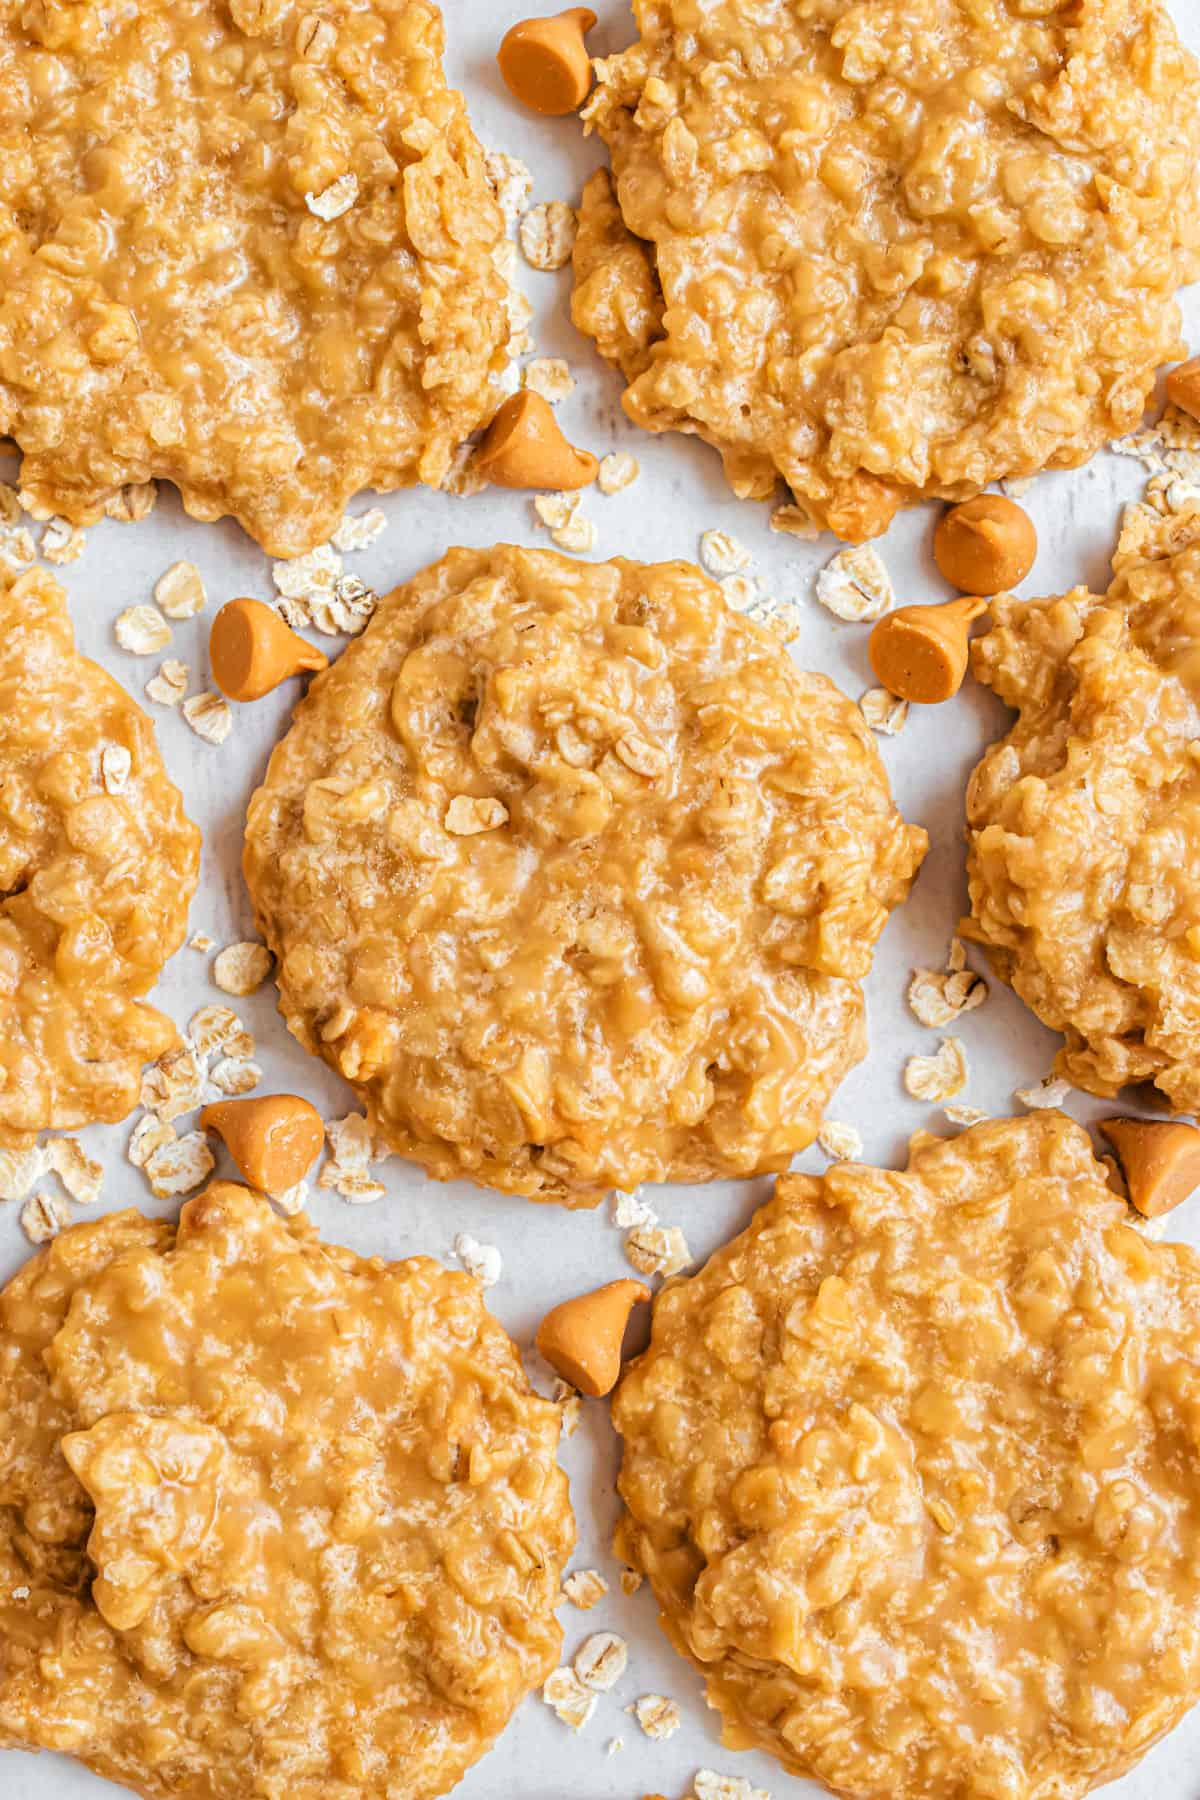 Oatmeal butterscotch cookies on parchment paper.